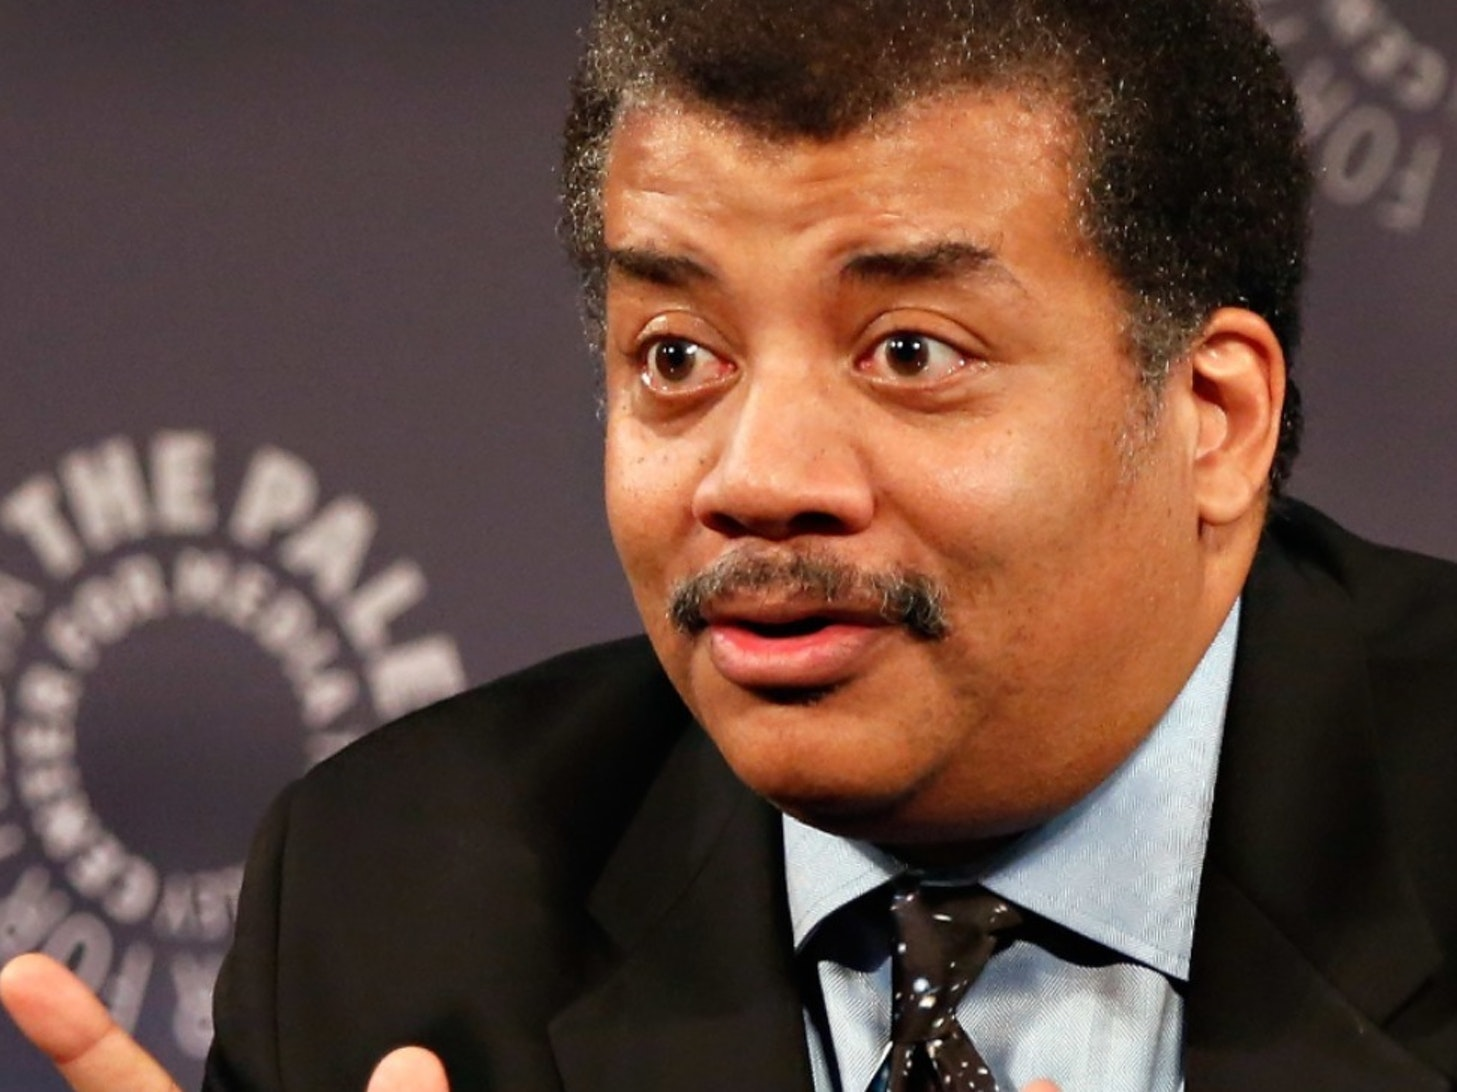 Neil deGrasse Tyson Is in Another Flat Earth Beef